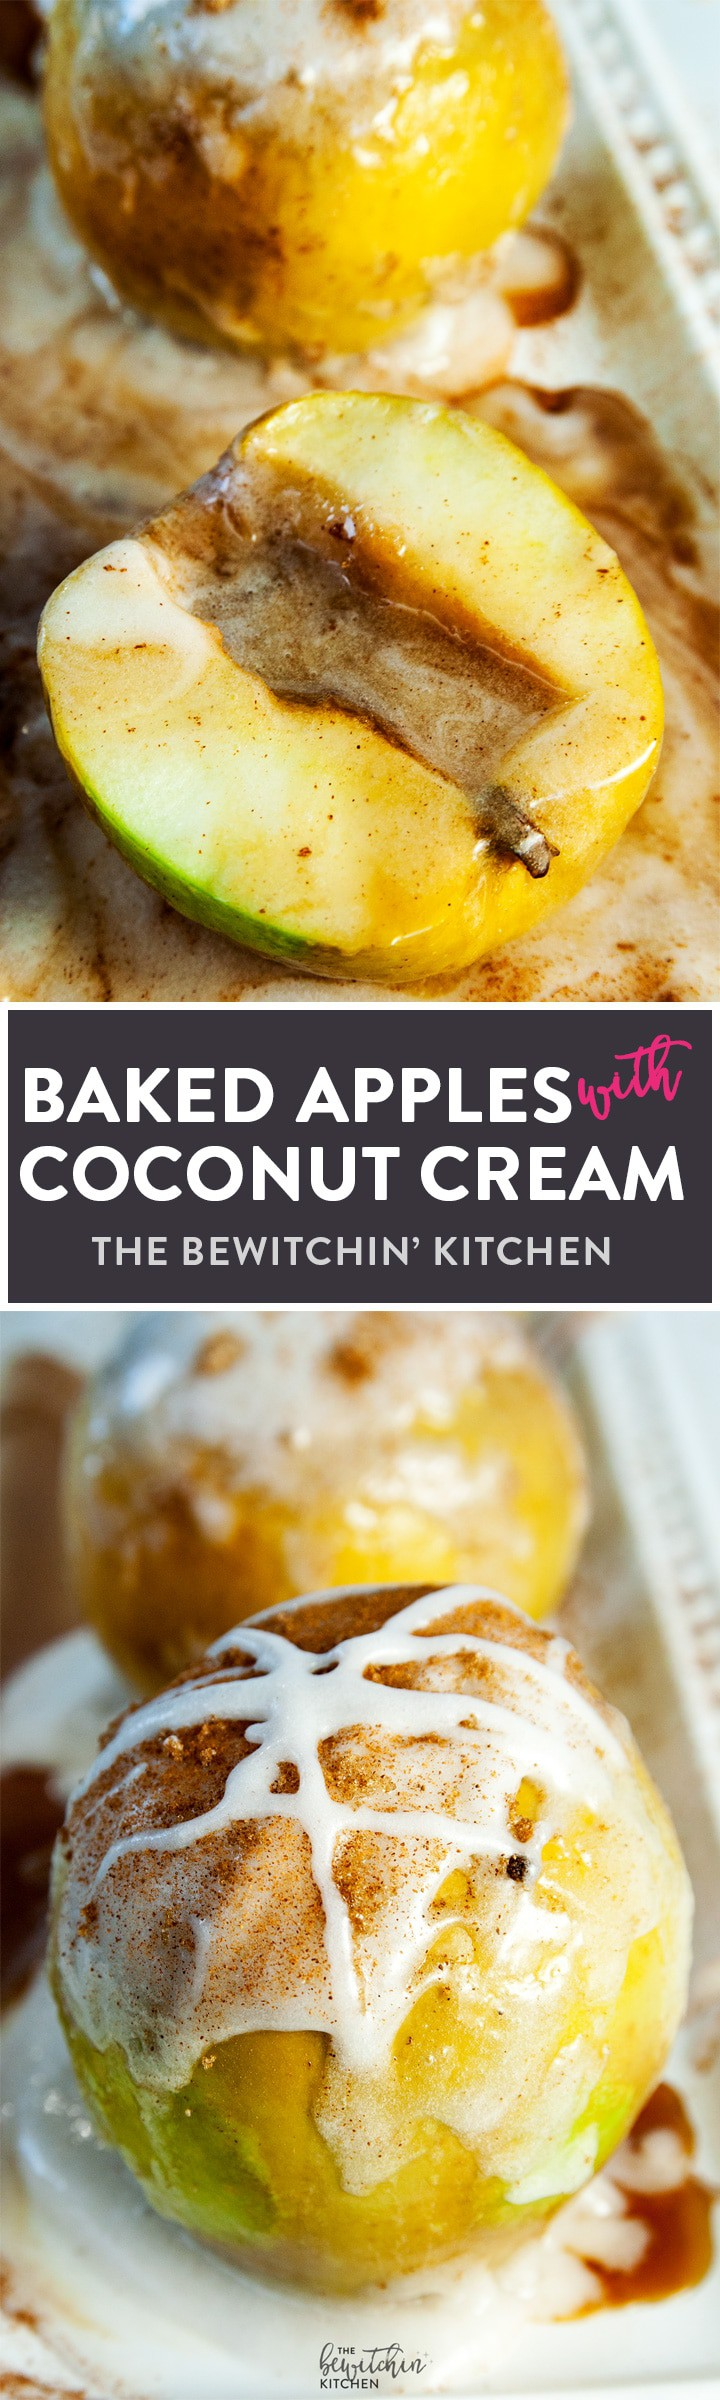 Baked Apples with Coconut Cream | The Bewitchin' Kitchen